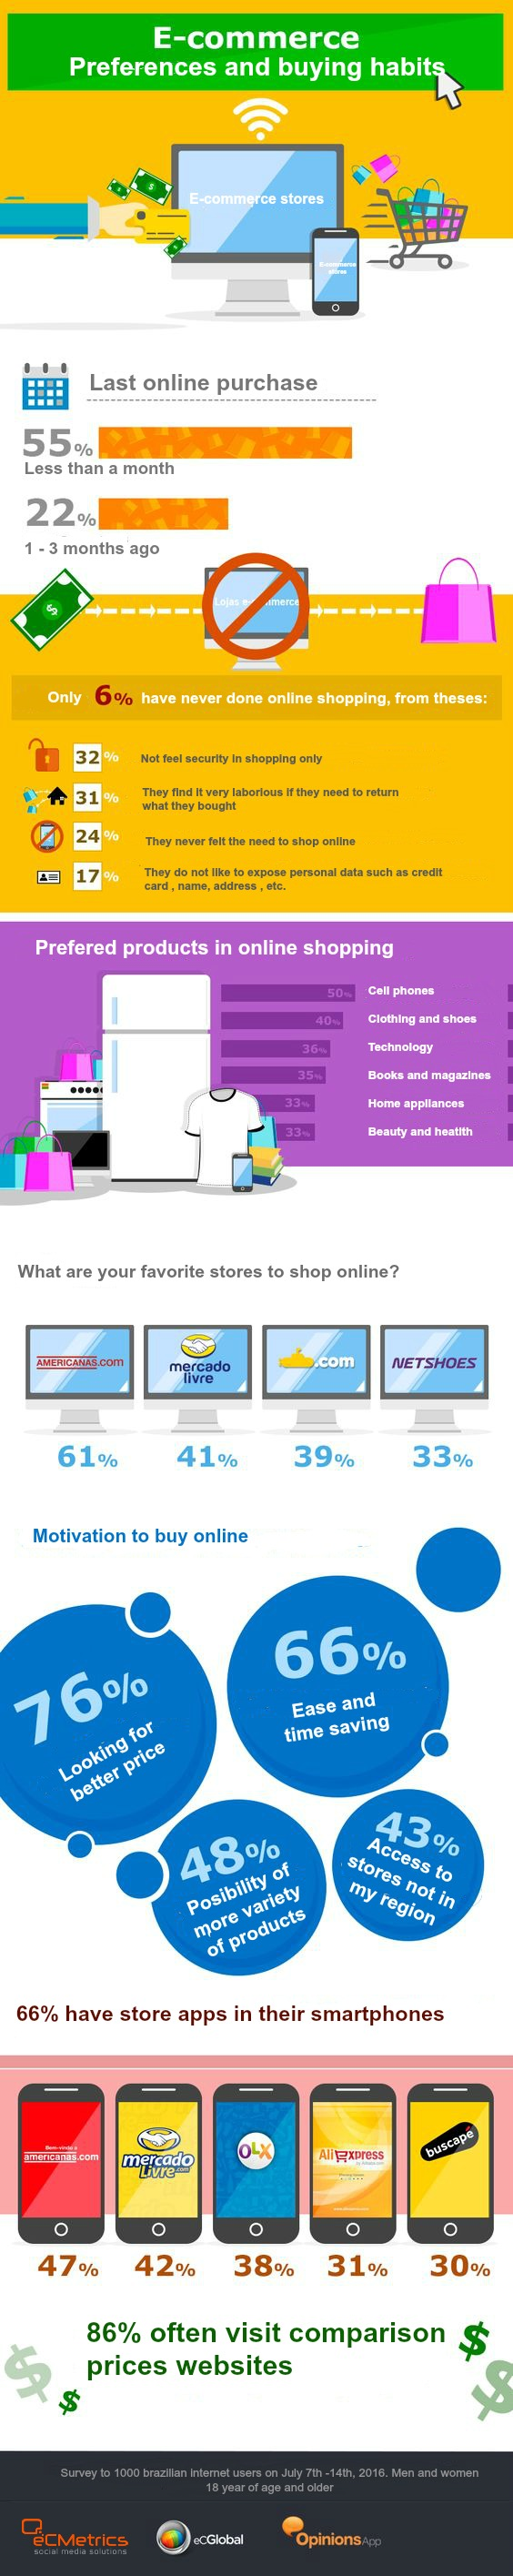 ecommerce info ENG